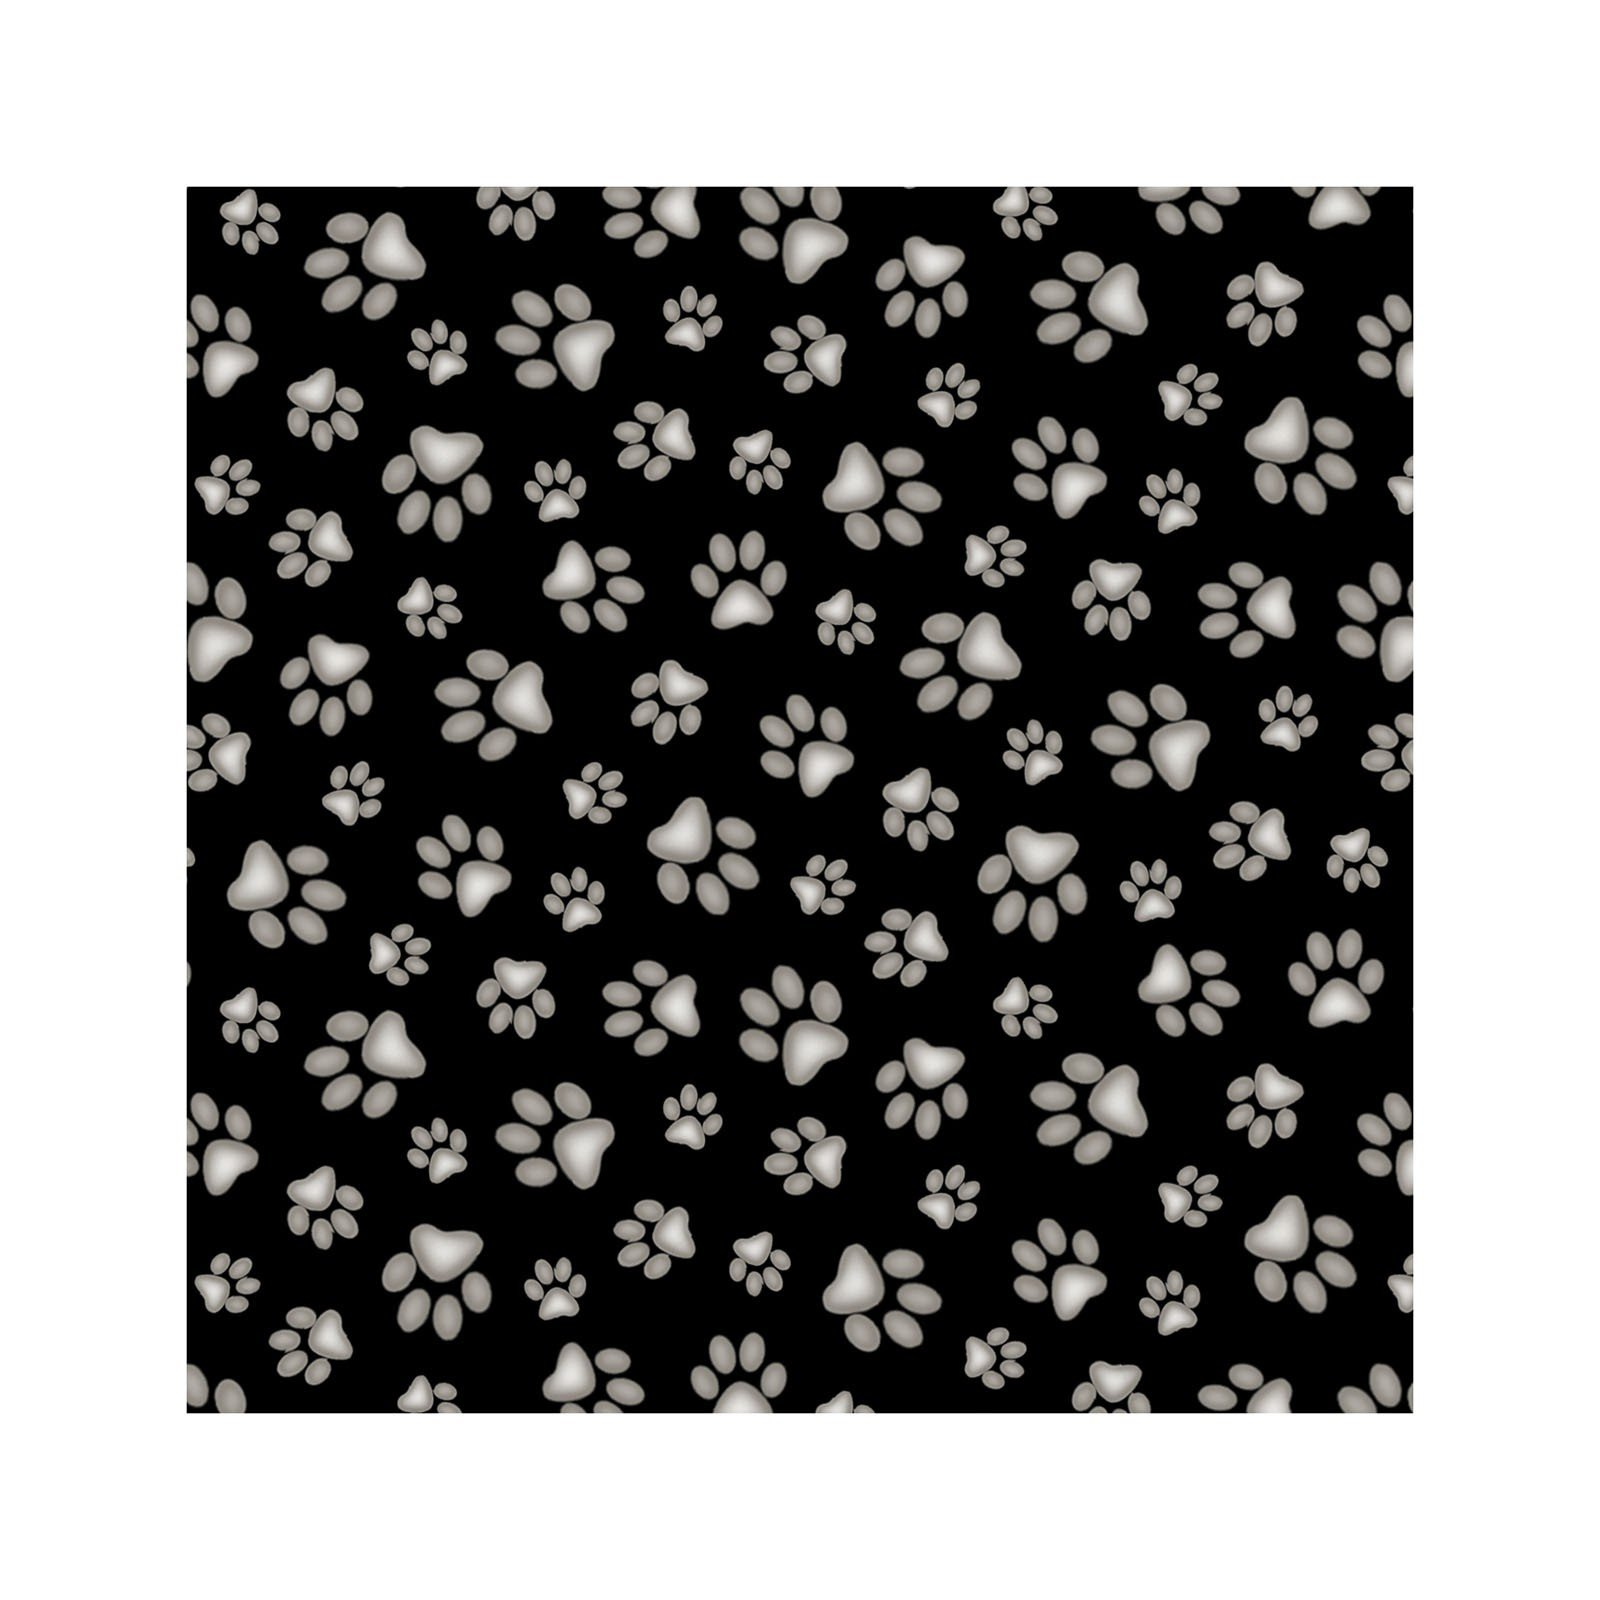 Adorable Pets - Paw Prints on black